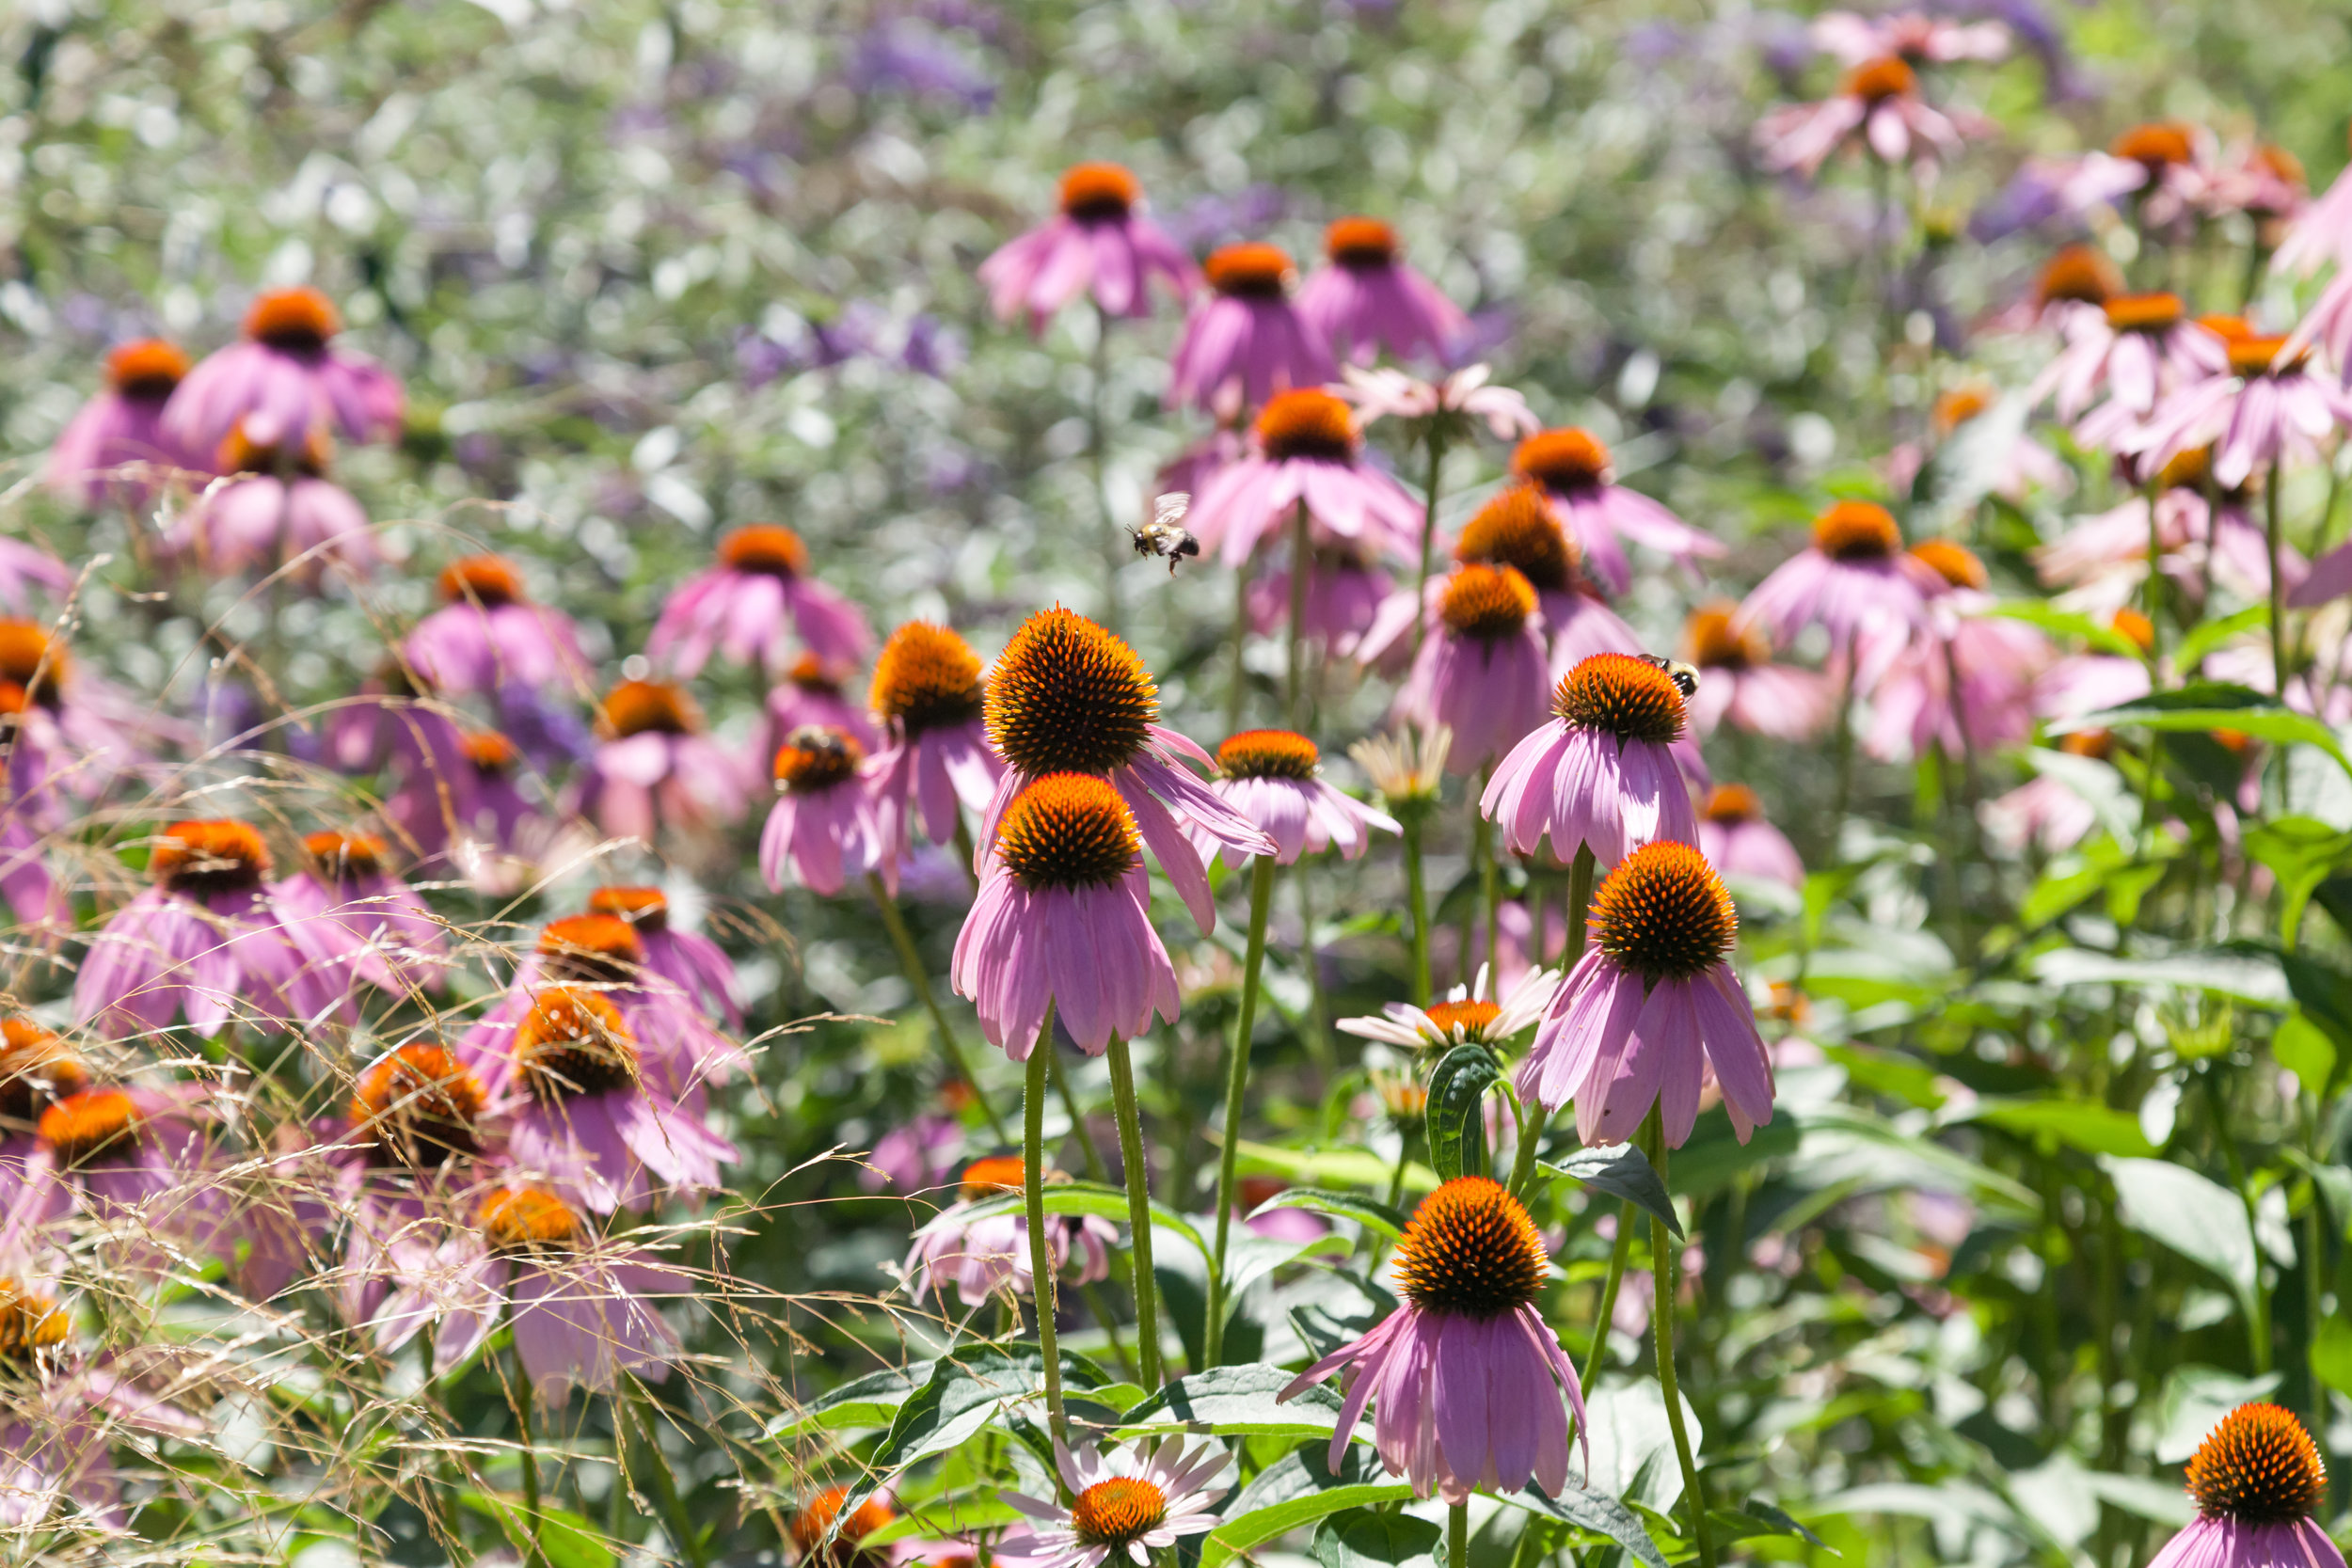 Bees hovering on Echinacea flowers.